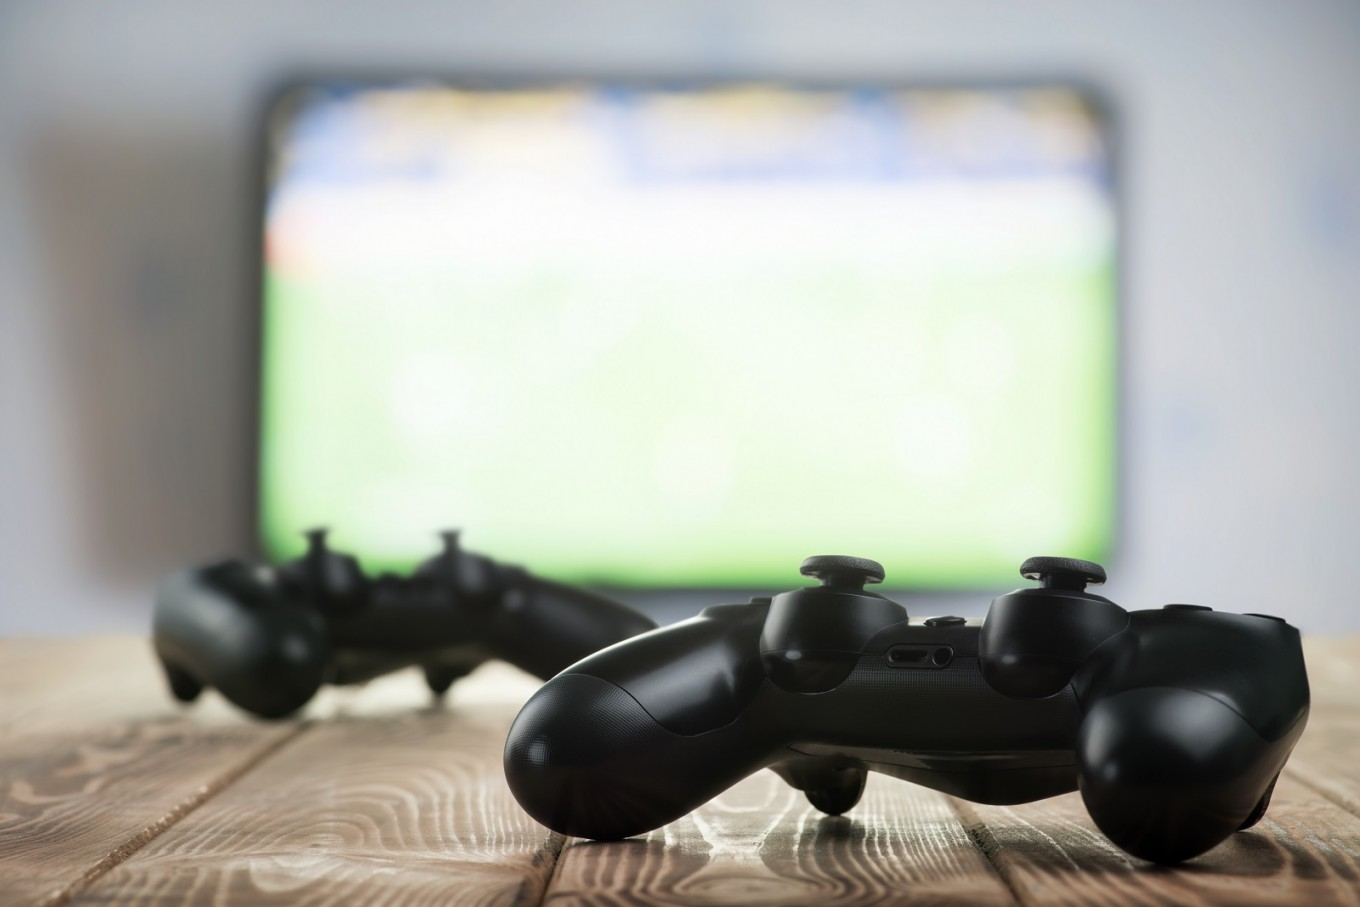 Video games a hobby for majority of Americans, study says